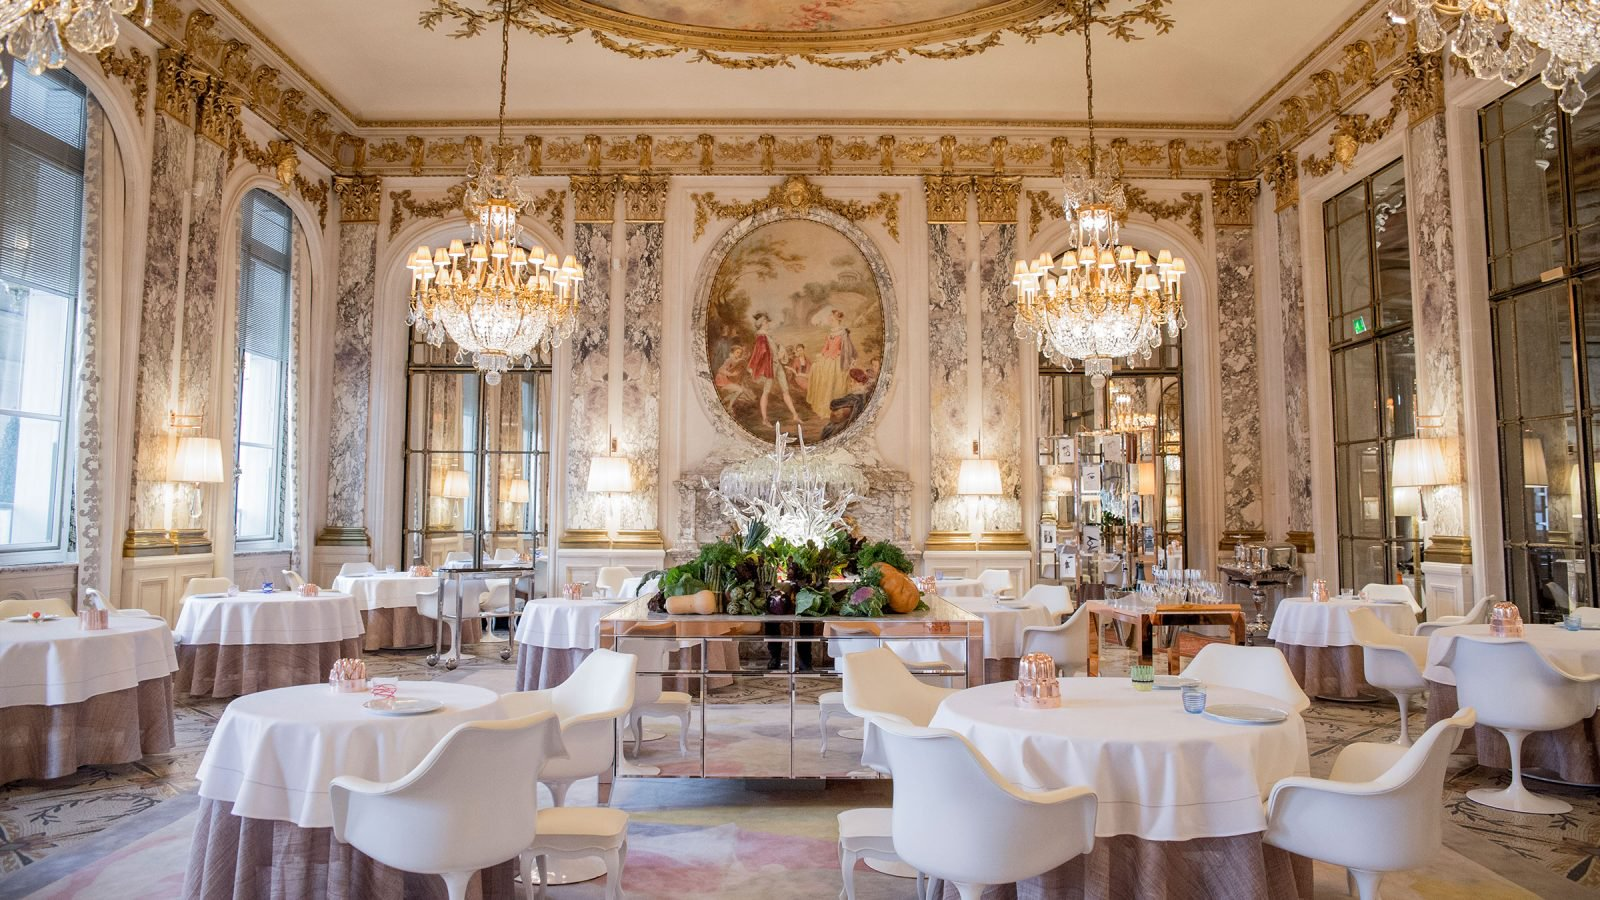 5 Amazing Hotels to Stay and Have a Celeb Sighting Experience  5 Amazing Hotels to Stay and Have a Celeb Sighting Experience 5 Amazing Hotels to Stay and Have a Celeb Sighting Experience paris le meurice restaurant le meurice alain ducasse 1